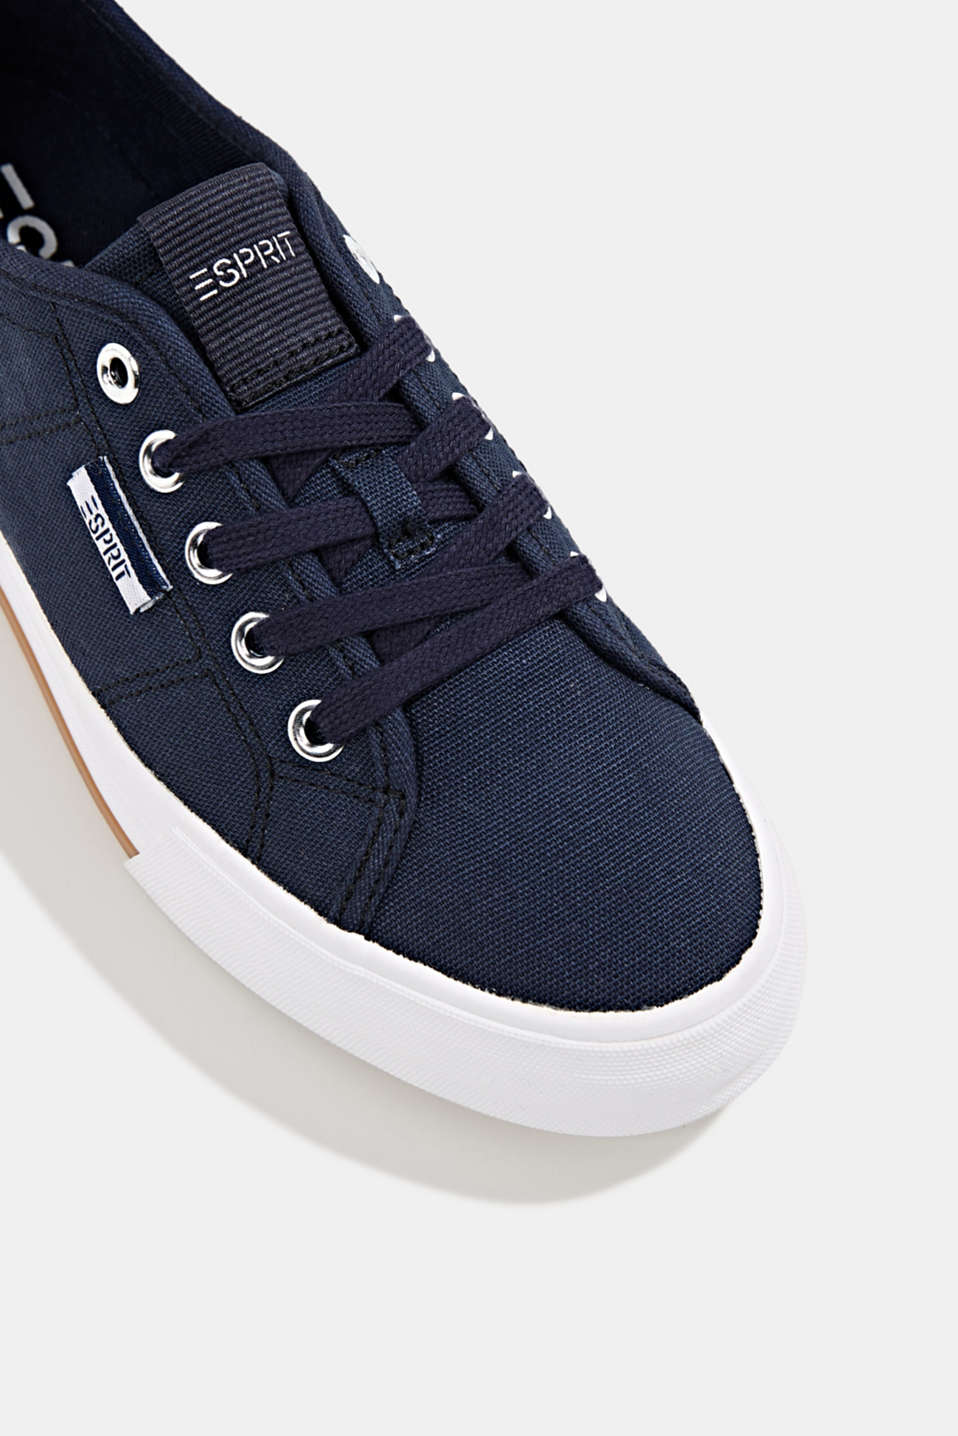 Cotton trainers, NAVY, detail image number 4